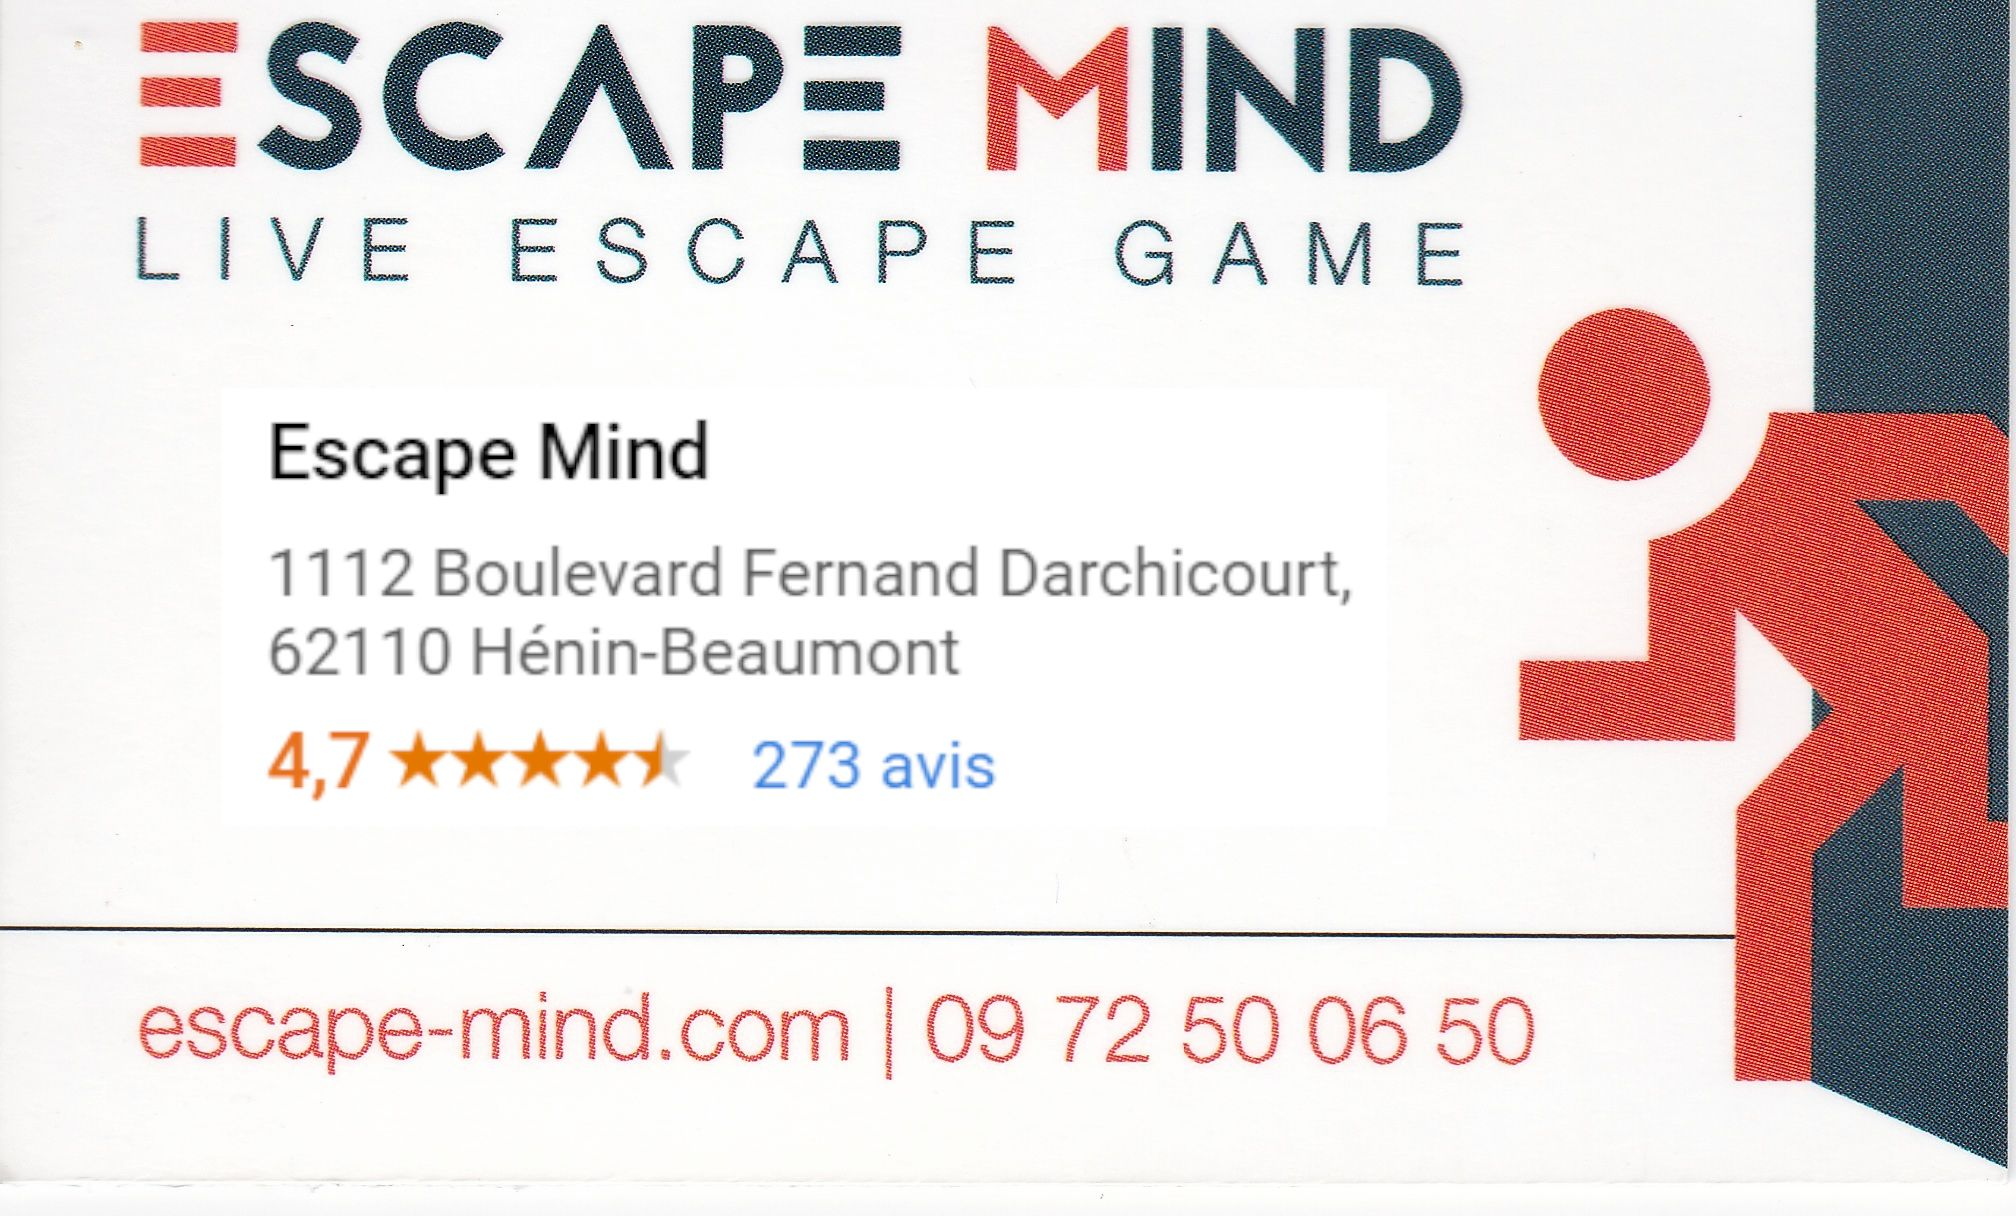 Escape Mind à Hénin-Beaumont.